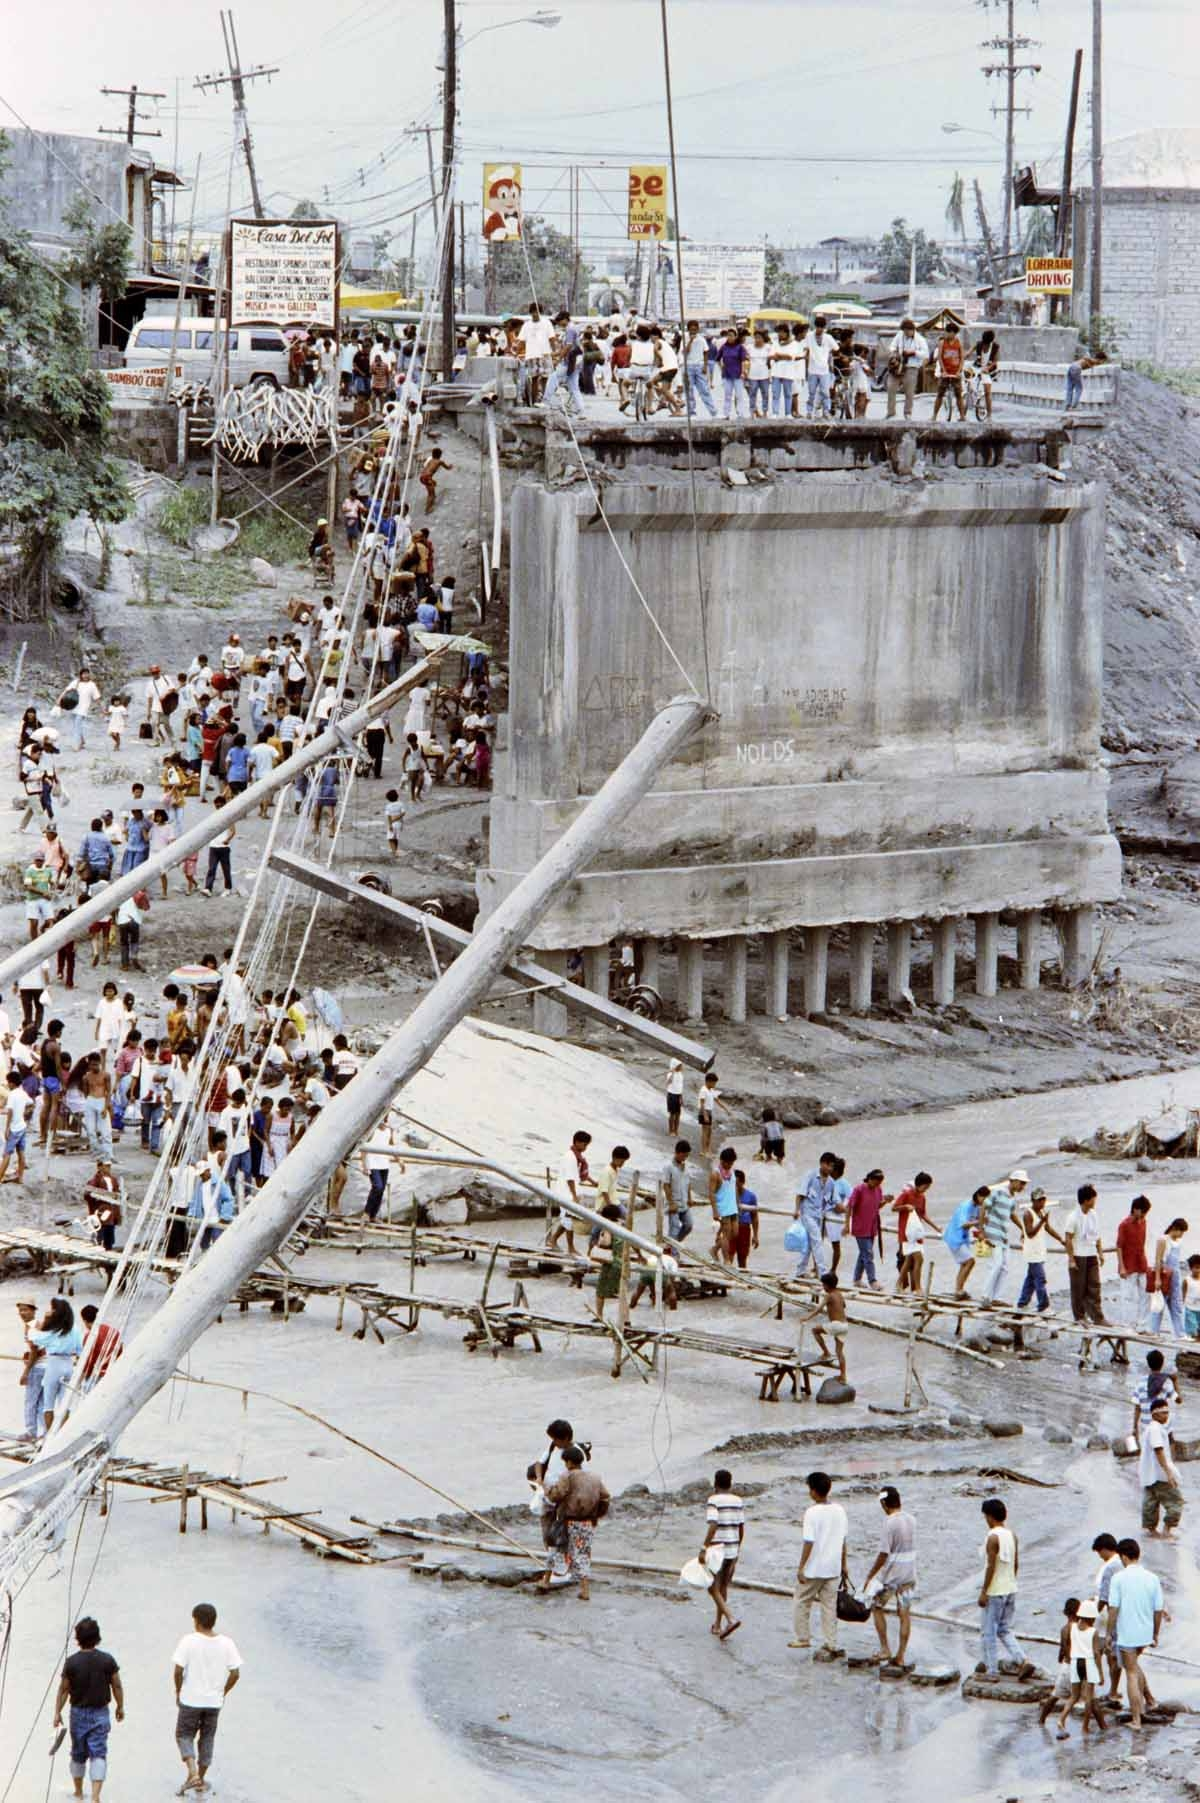 Angeles City residents cross the river on improvised wooden bridges, on June 20, 1991 after Abacan was destroyed by flash flood and mudflows from combined effects of typhon, eruption of Mount Pinatubo volcano and earthquakes